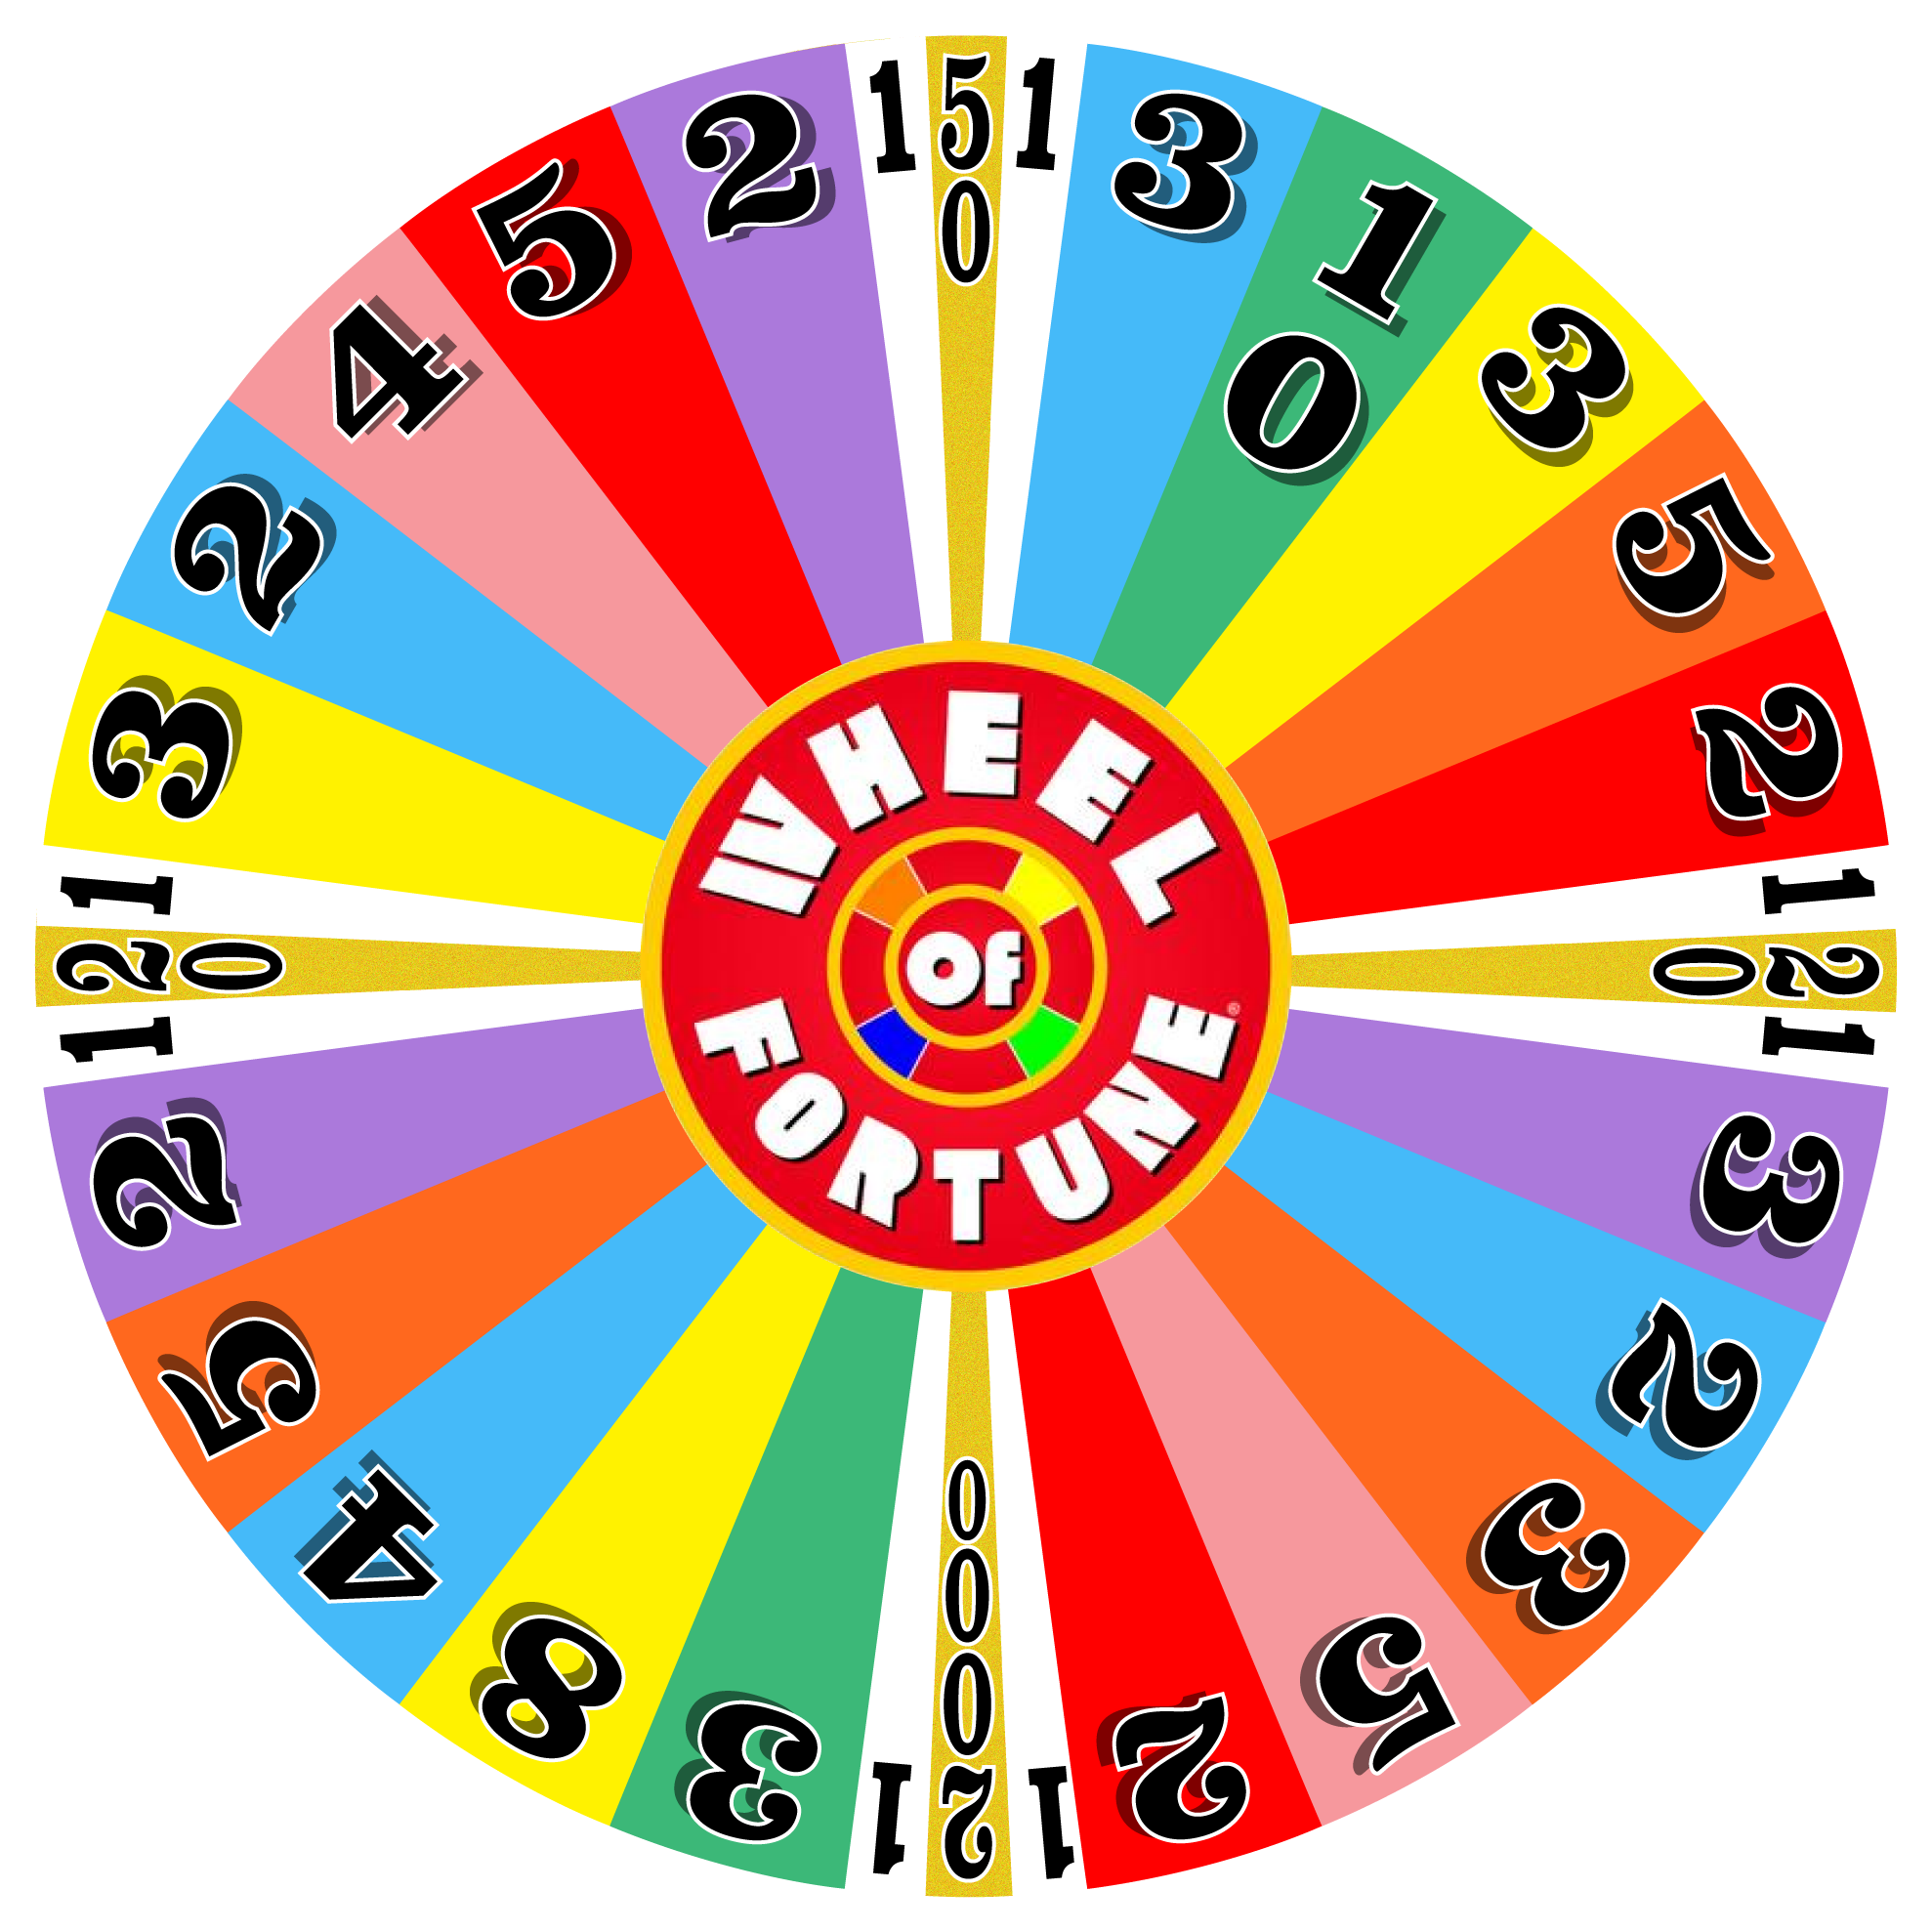 wheel of fortune online fun arcade